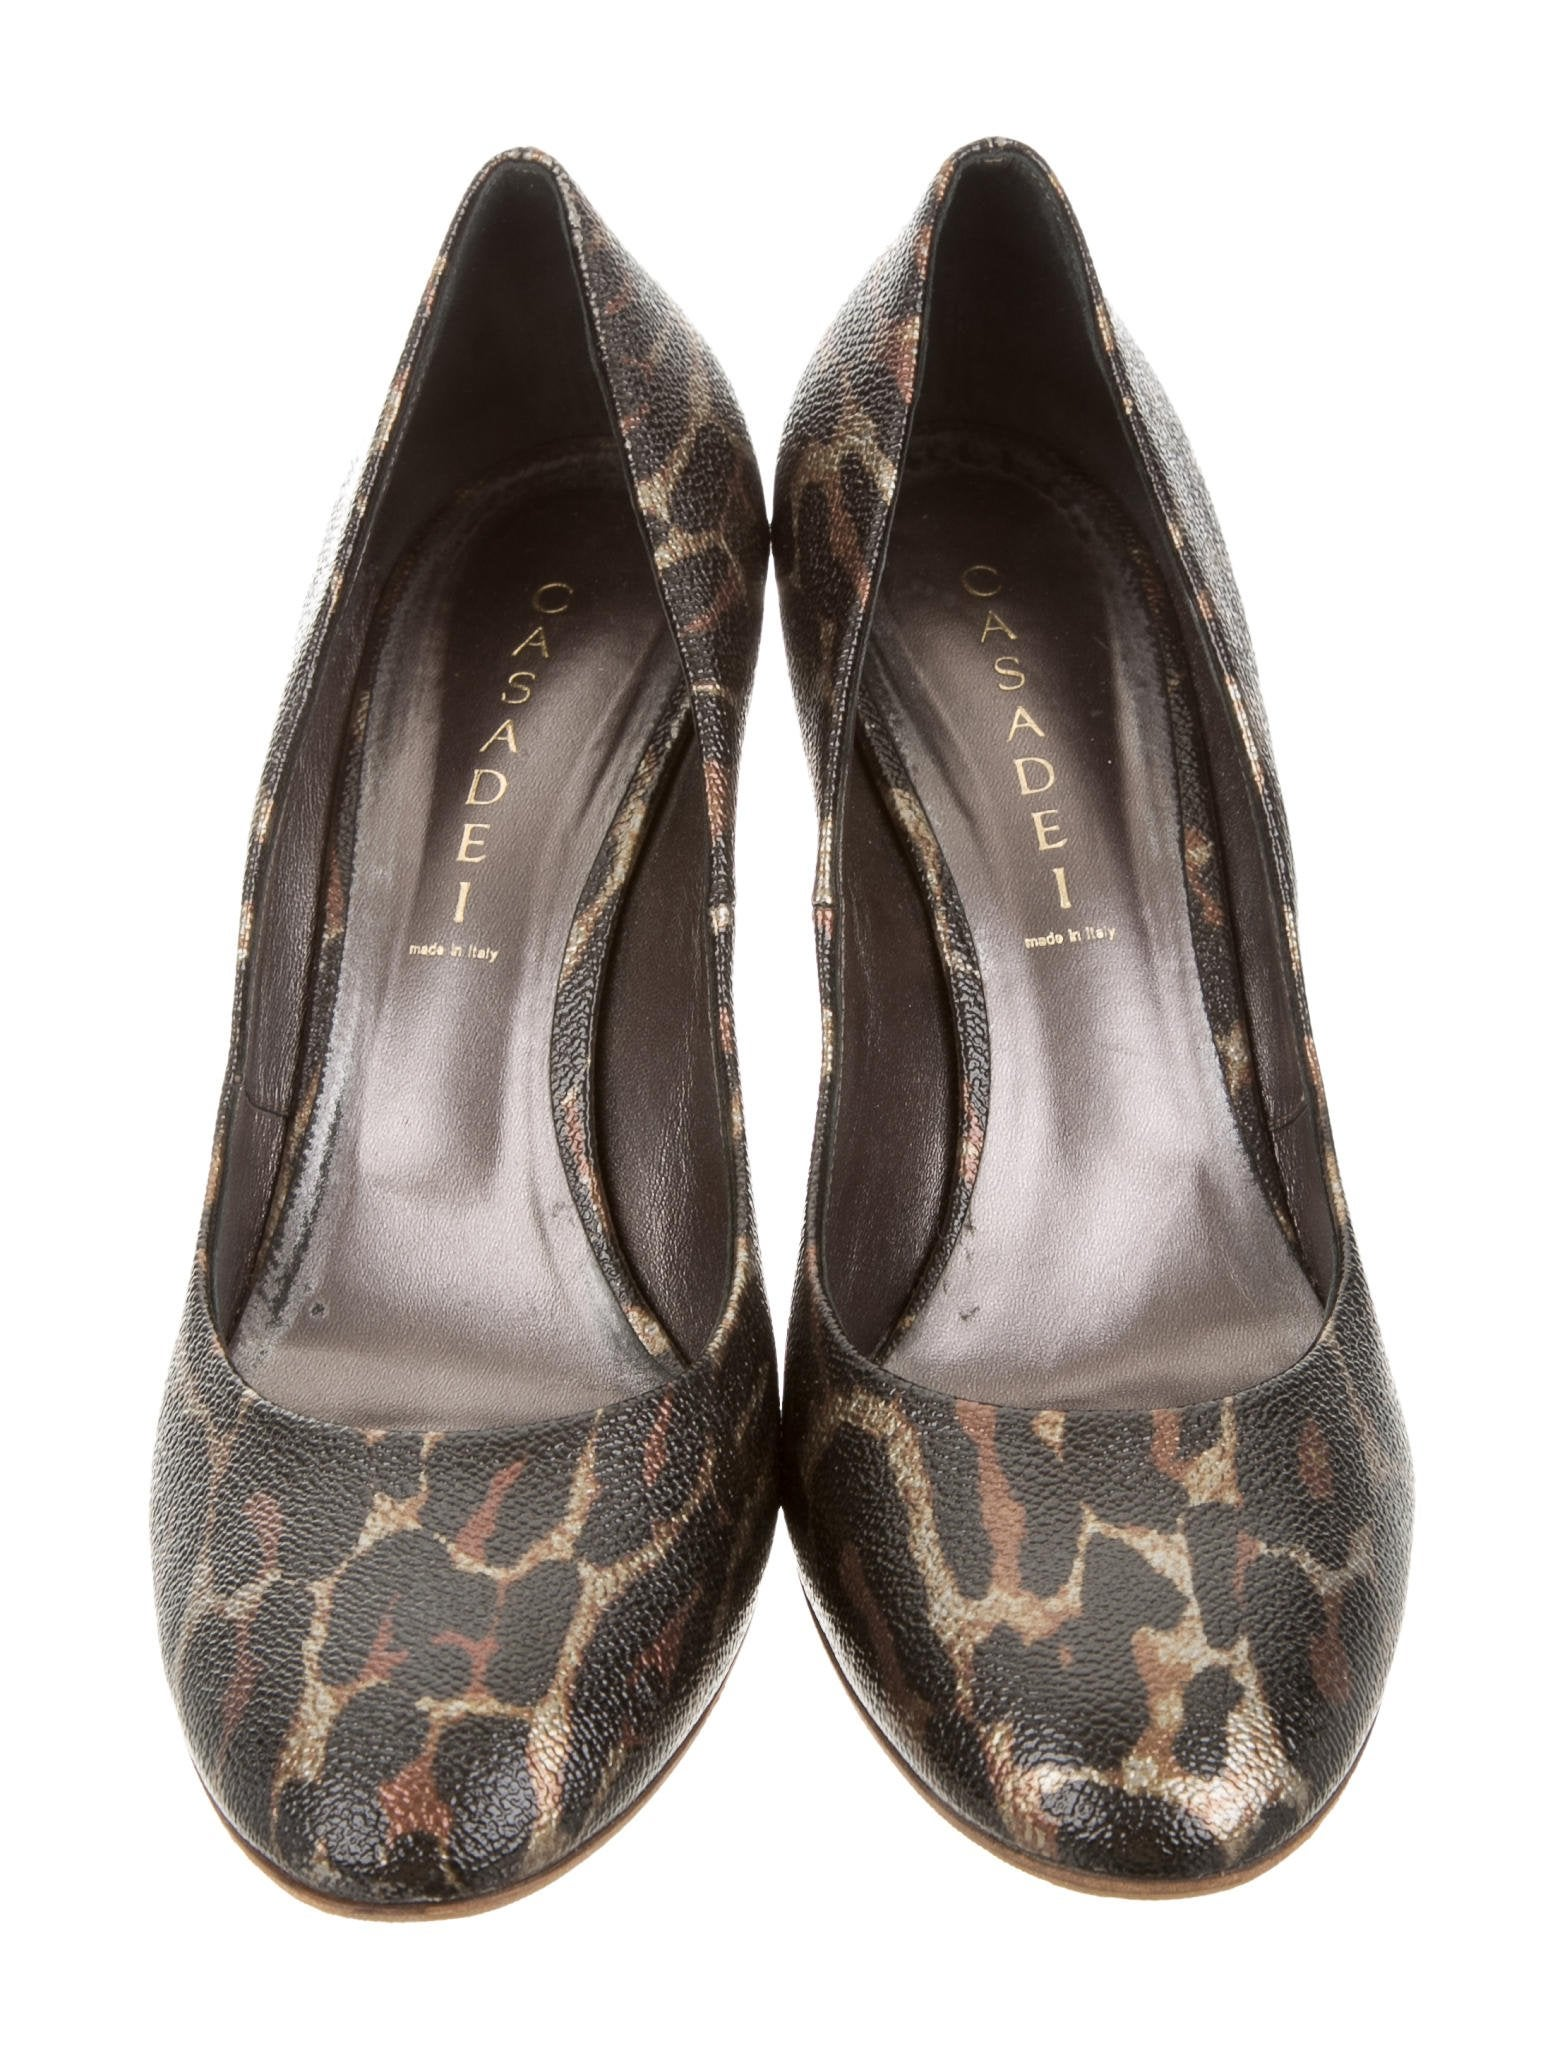 Christian Louboutin Women Pumps: Discover the latest Women Pumps collection available at Christian Louboutin Online Boutique.